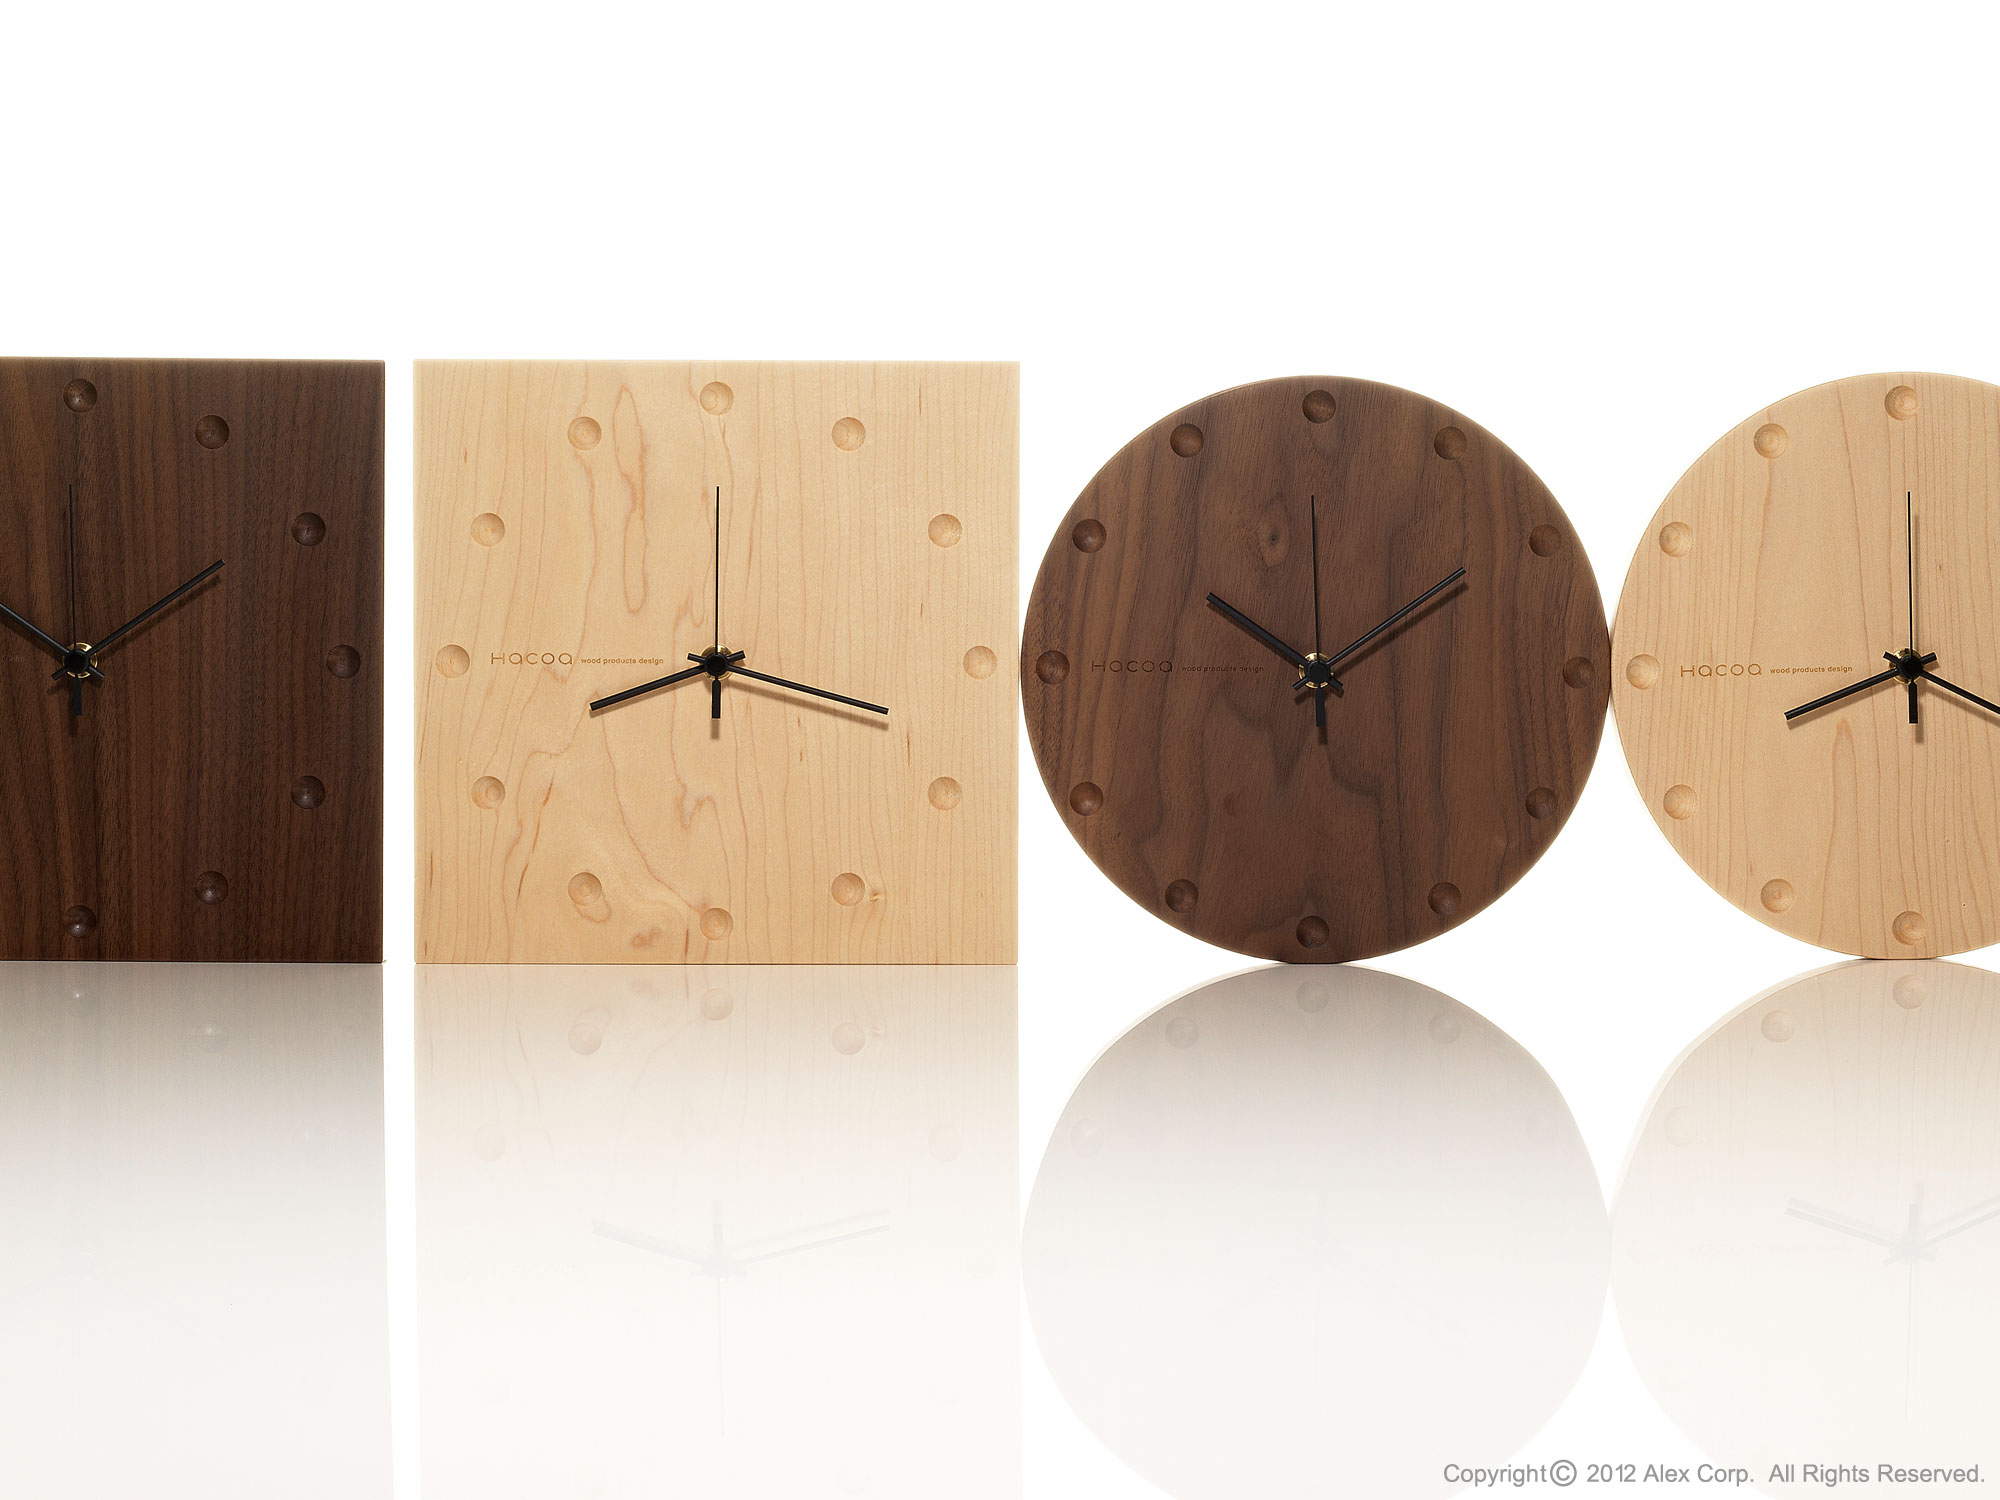 Hacoa wall clock table clock products alexcious